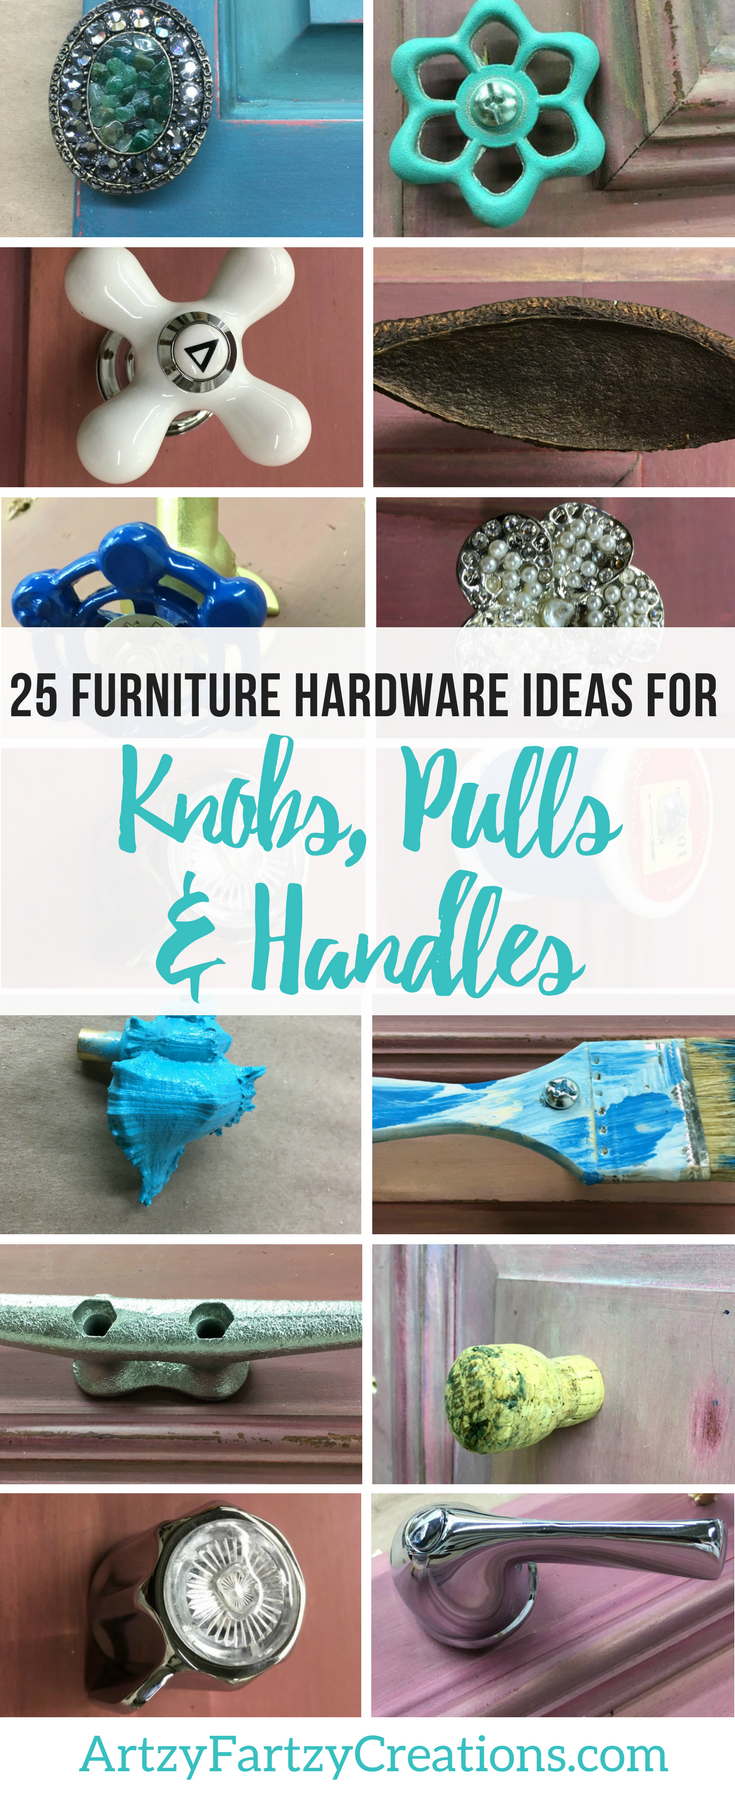 25 Furniture Hardware Ideas for Knobs, Pulls and Handles from the Unexpected | Cheryl Phan | Furniture Makeover Ideas | Drawer Handle Ideas | Drawer Pulls